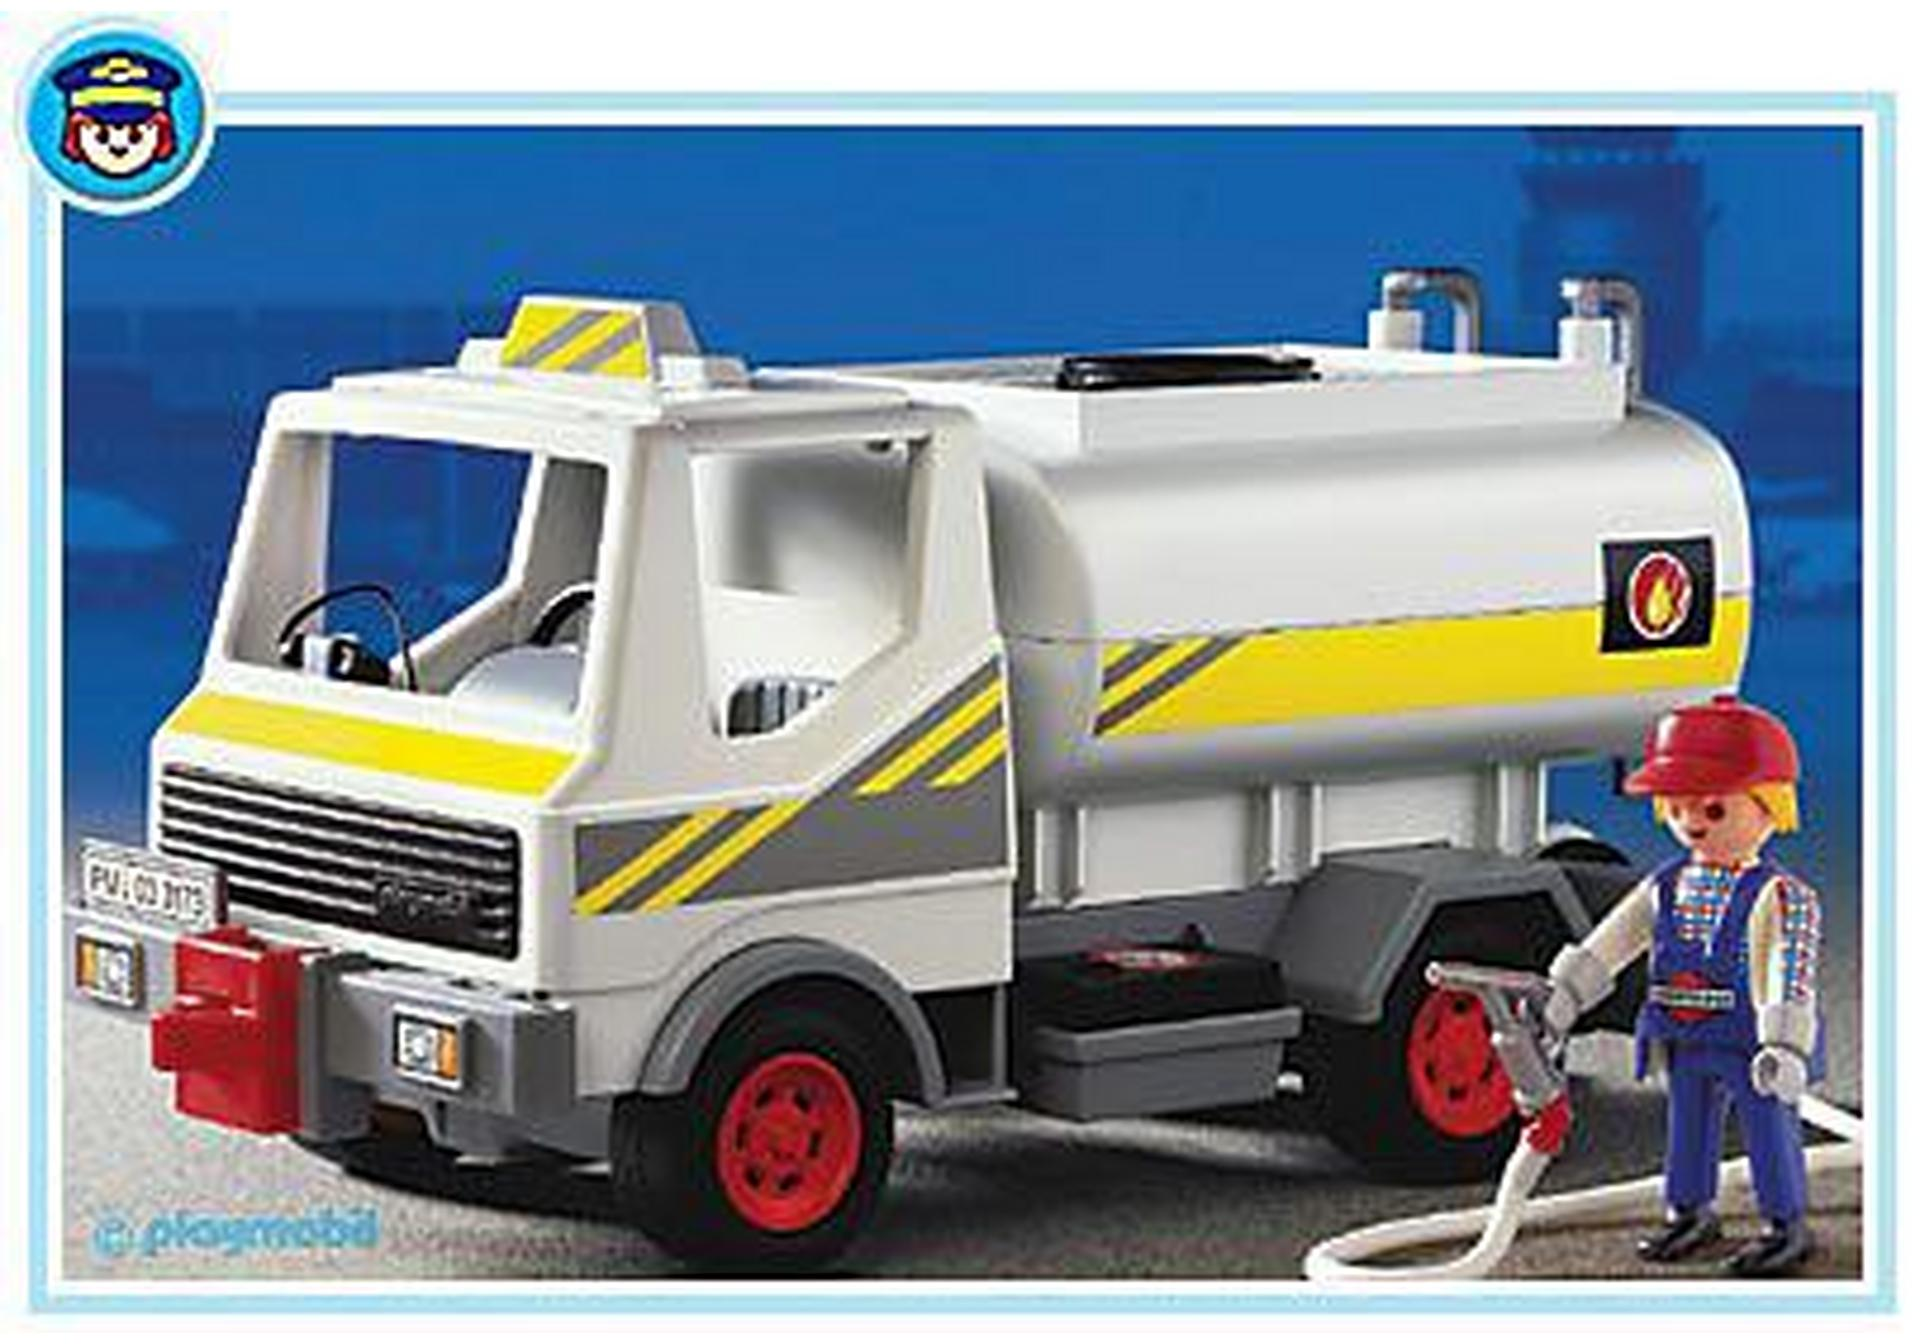 Chauffeur camion citerne 3173 a playmobil france - Playmobil camion ...